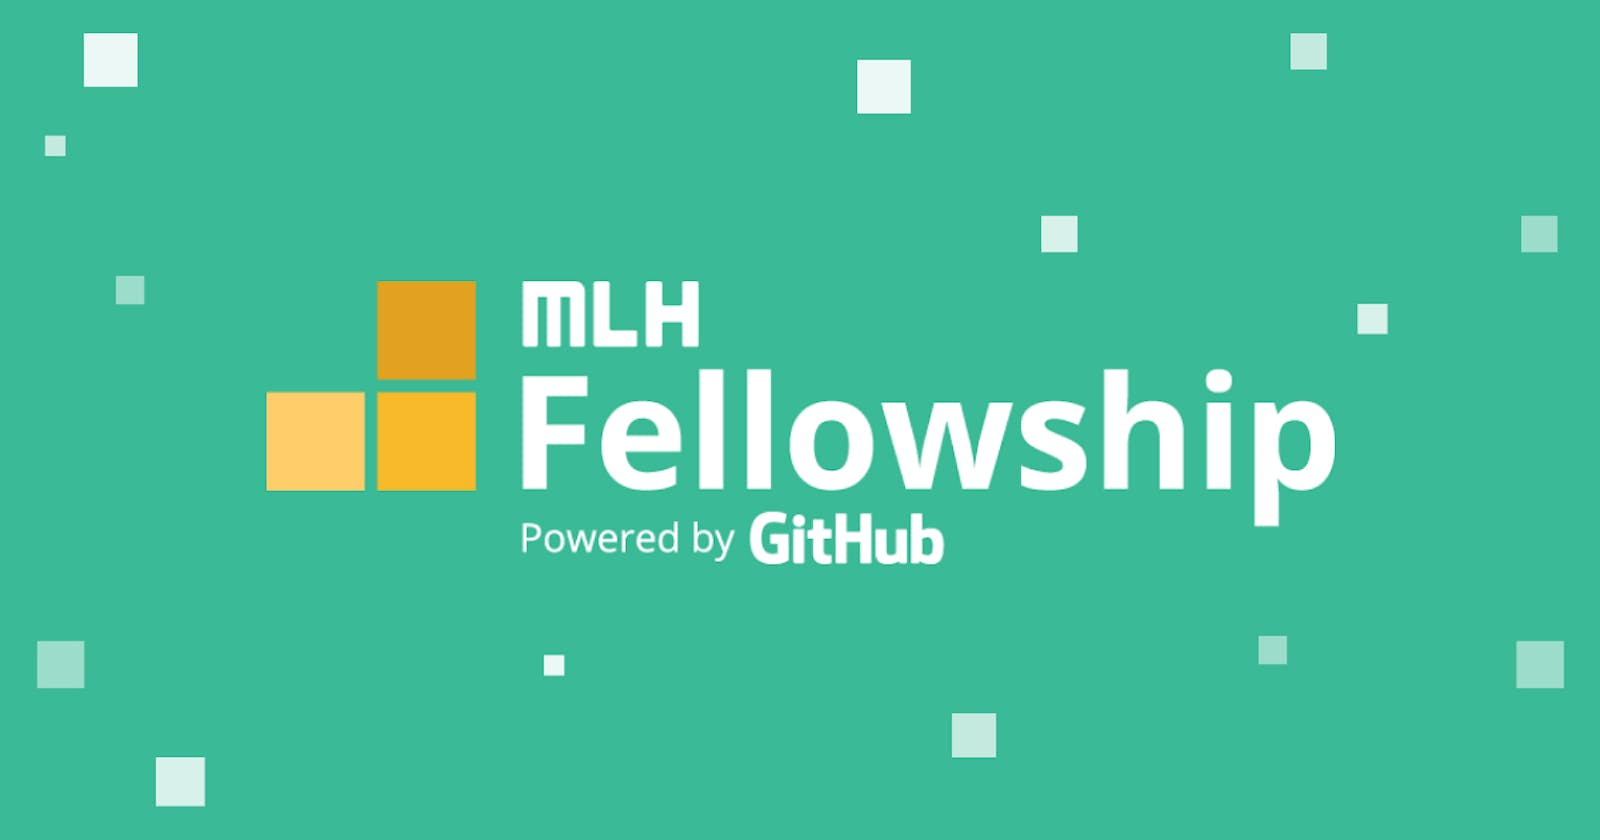 My interview experience@MLH Fellowship